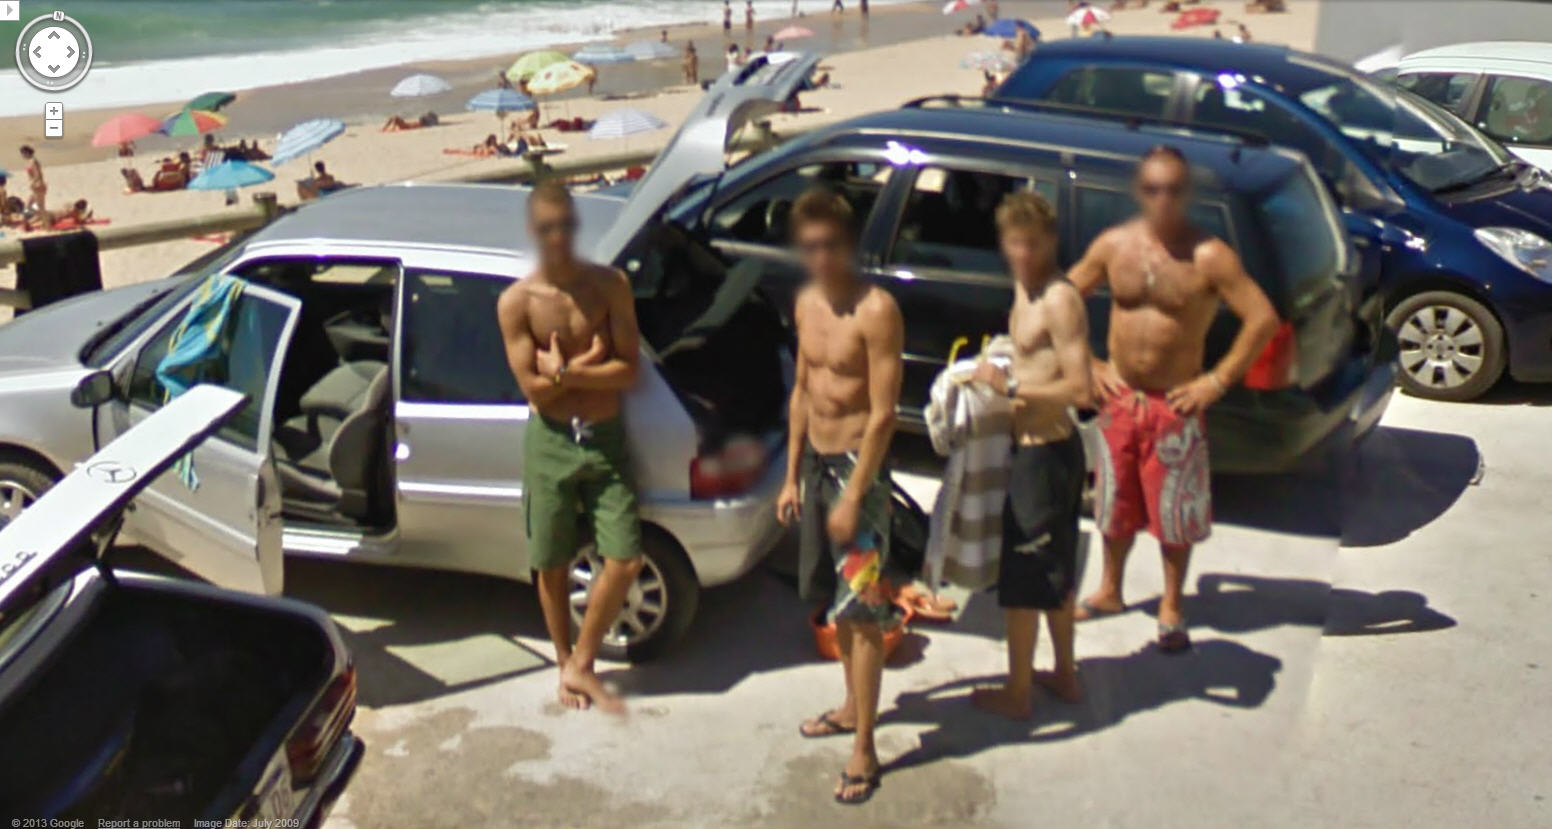 Google Street View Portugal Now Live!